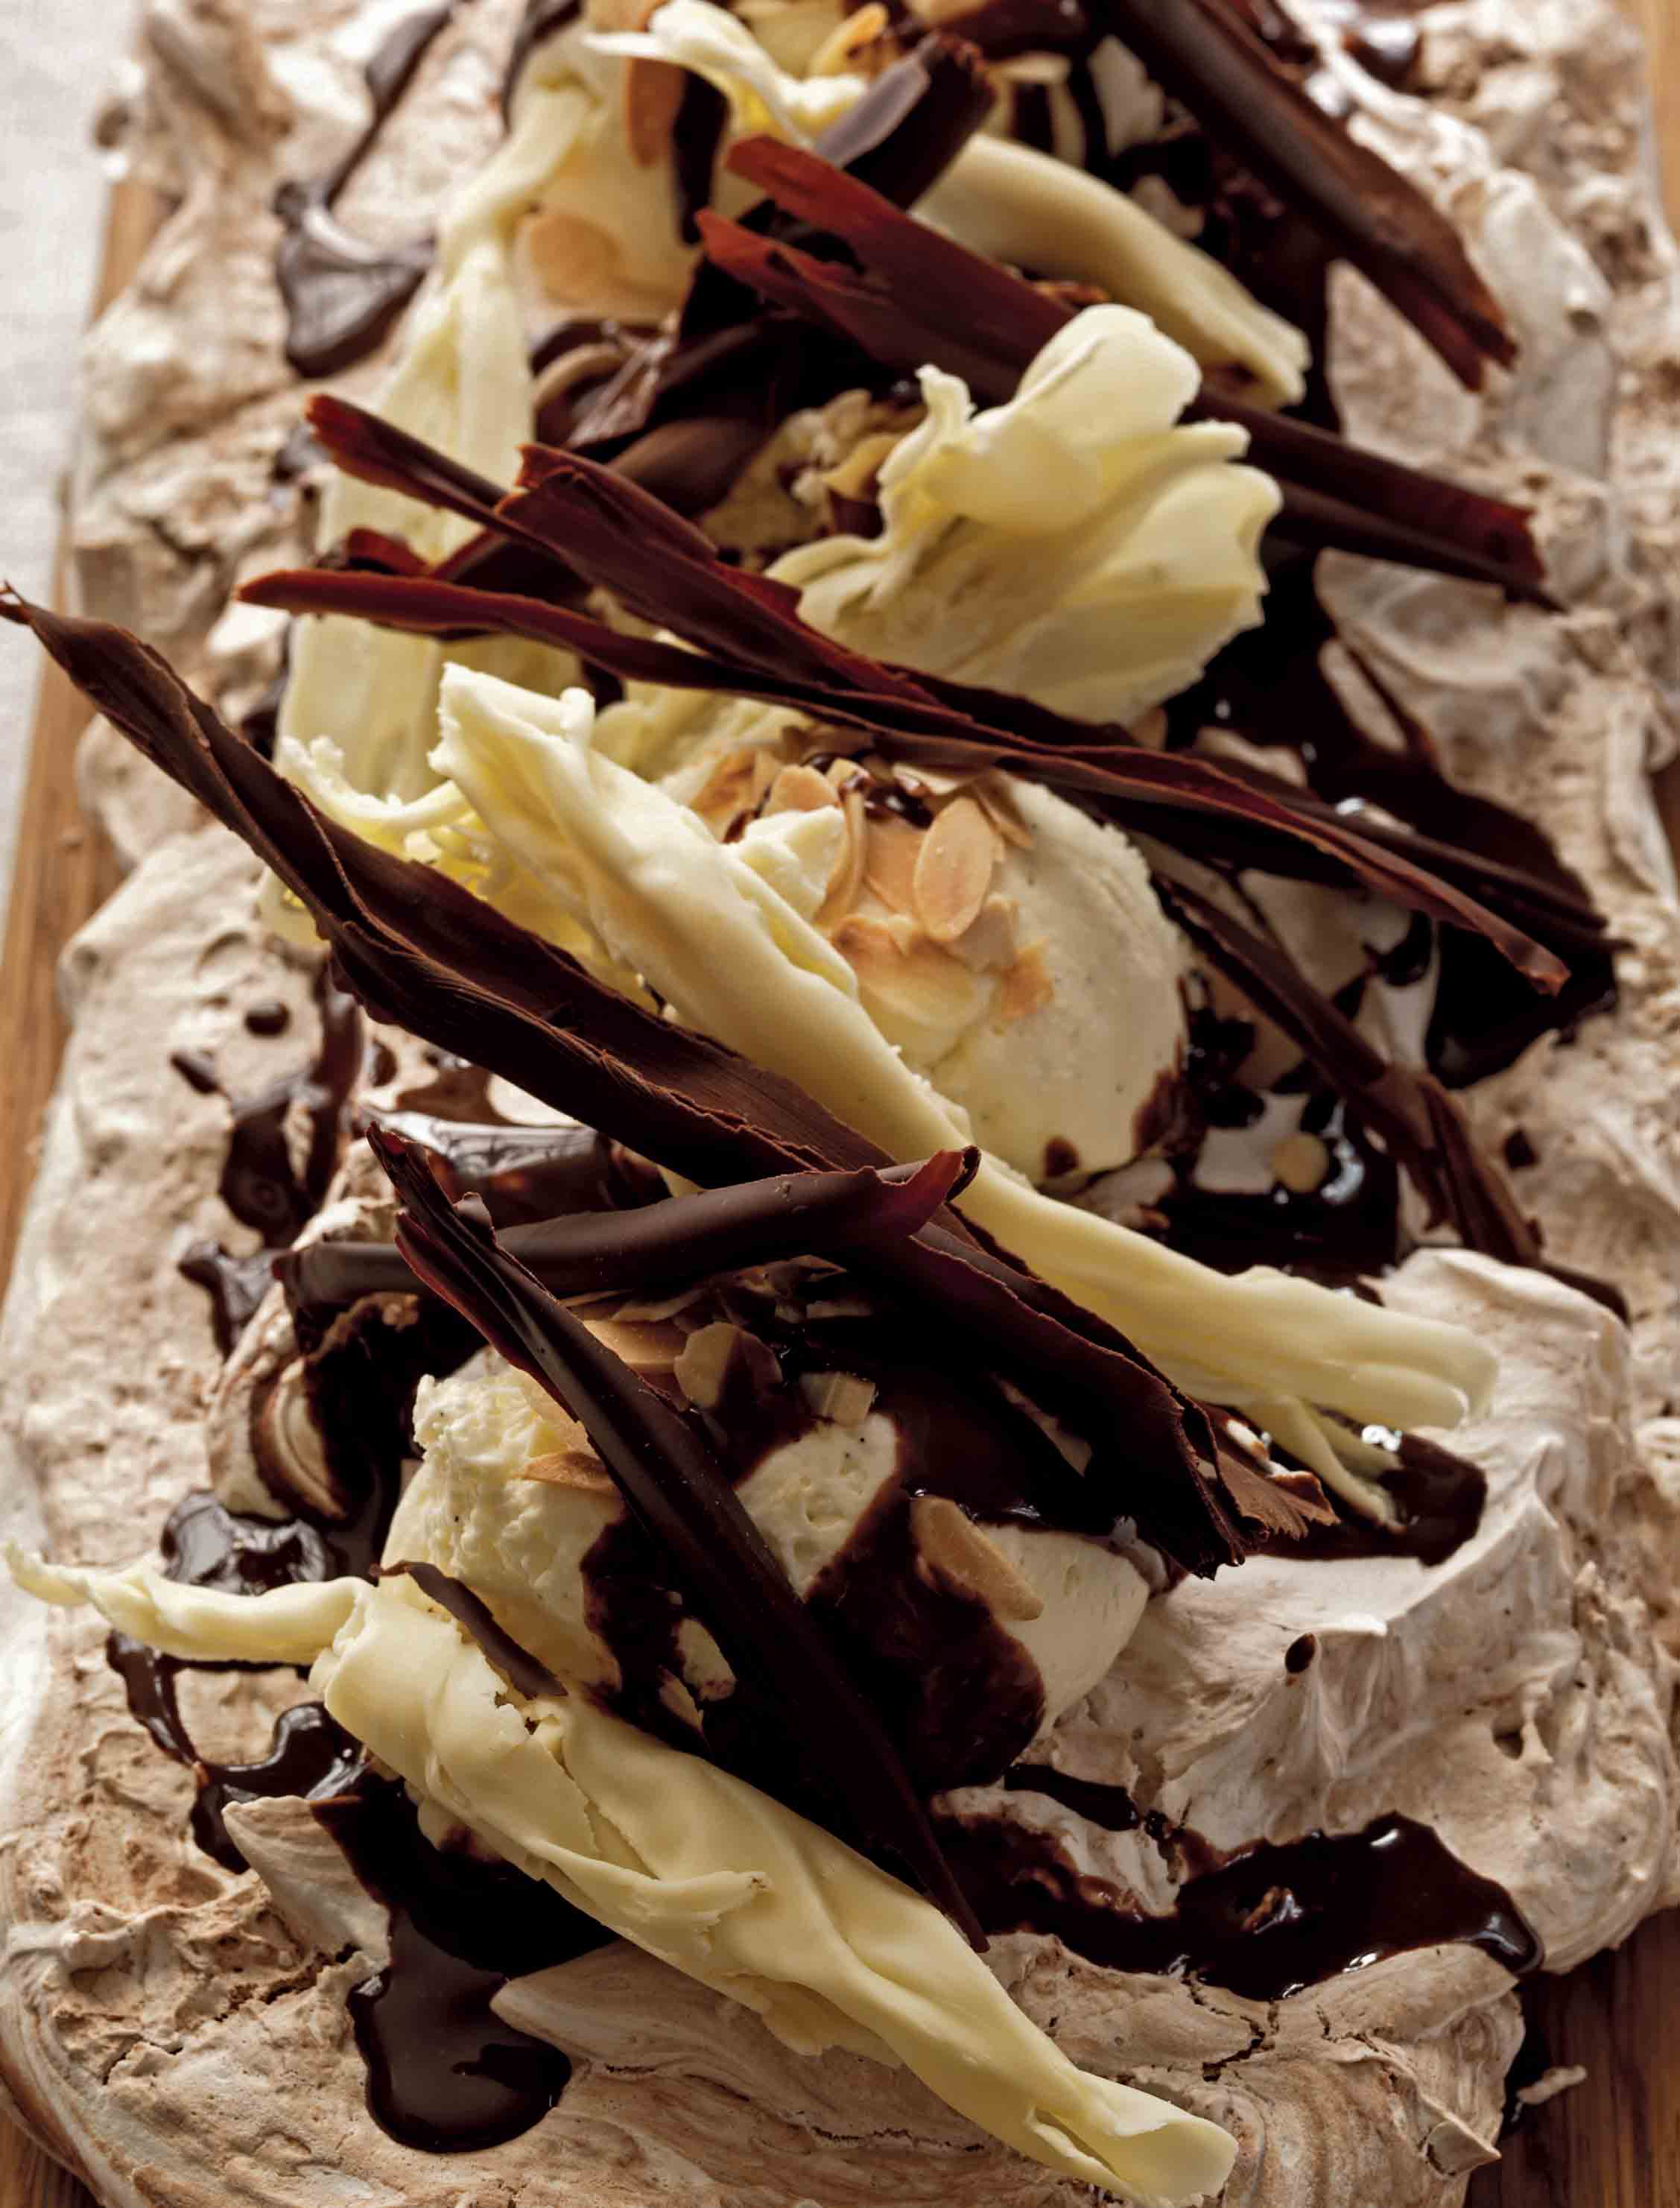 Chocolate and almond pavlova